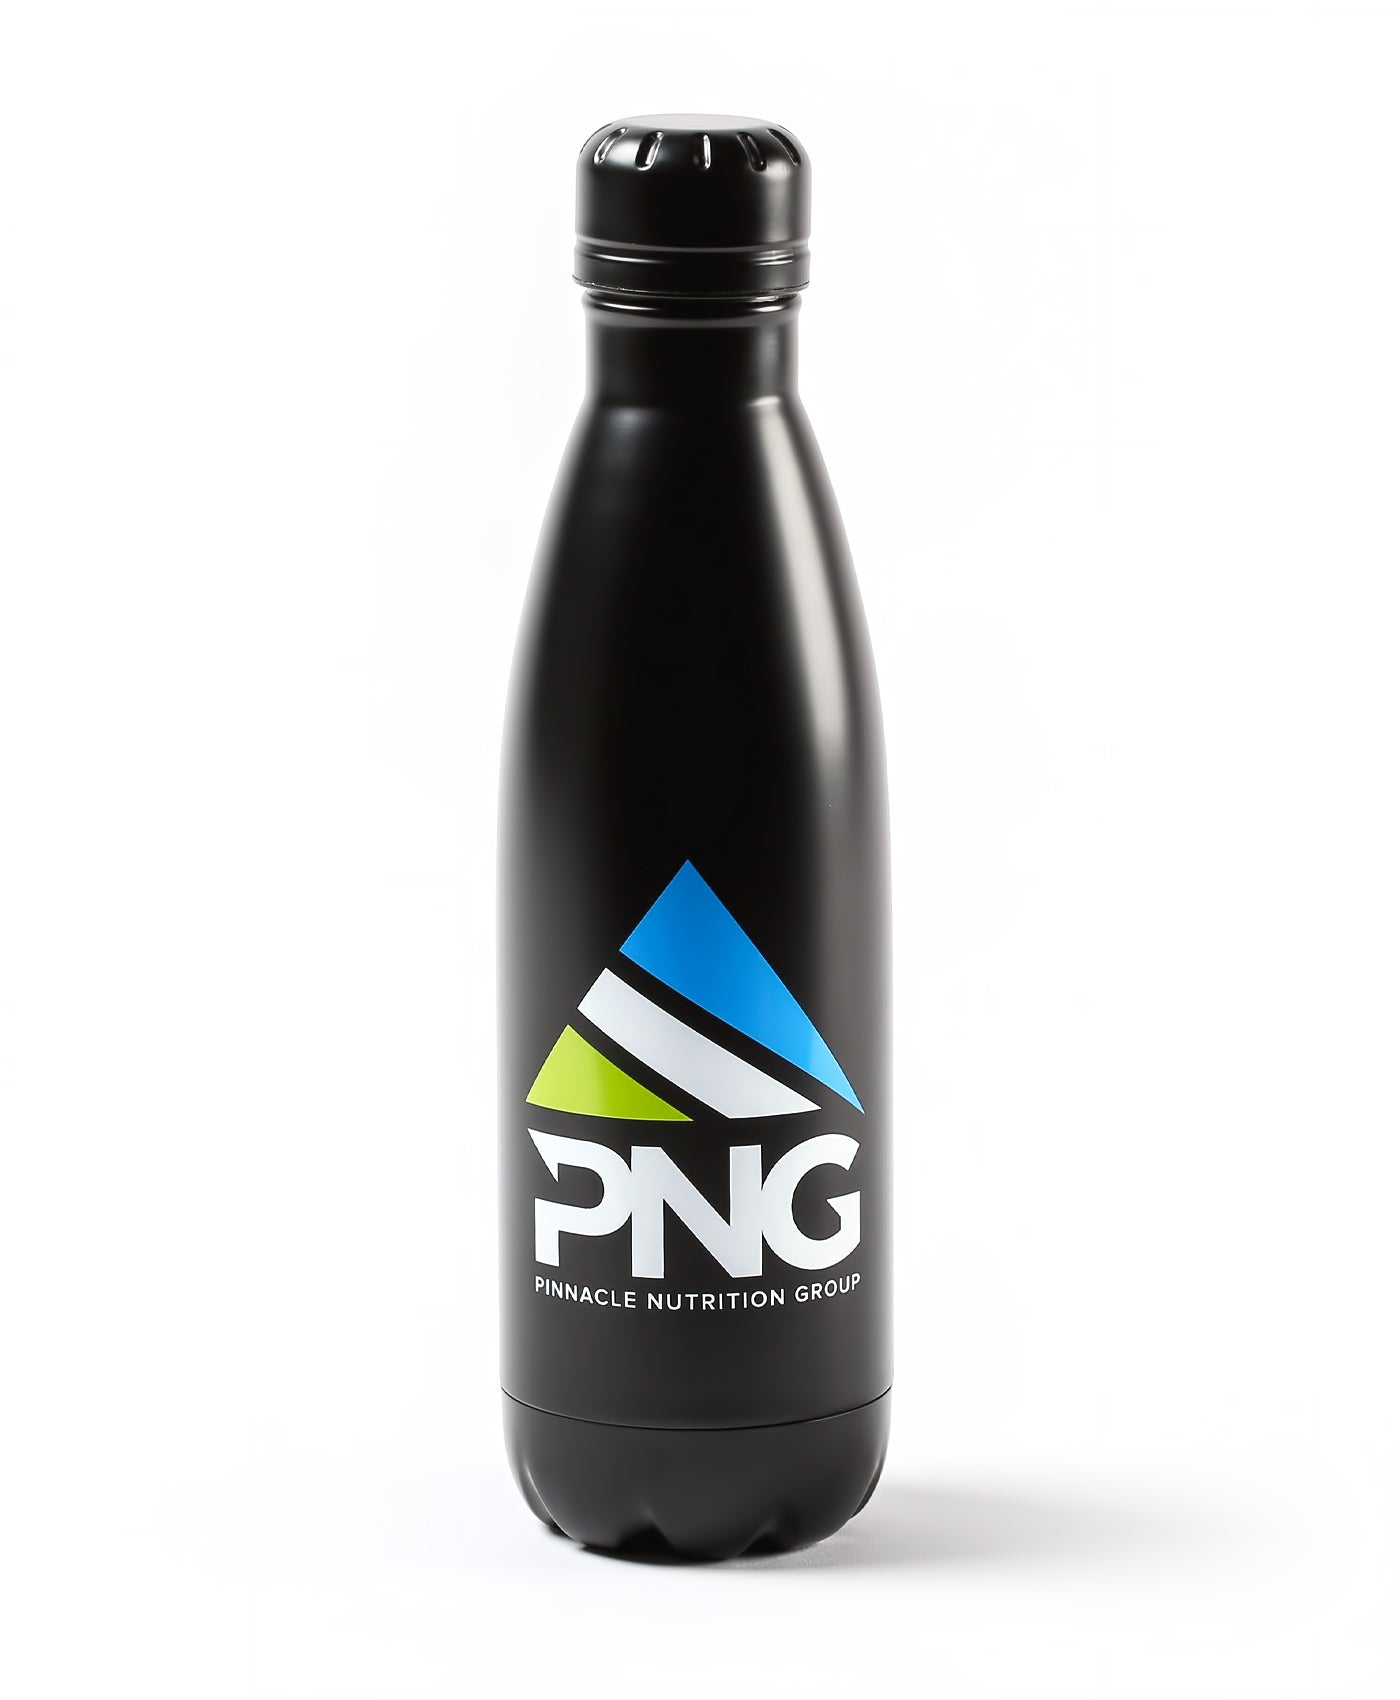 17oz. Stainless Steel Vacuum Insulated Bottle - Pinnacle Nutrition Group